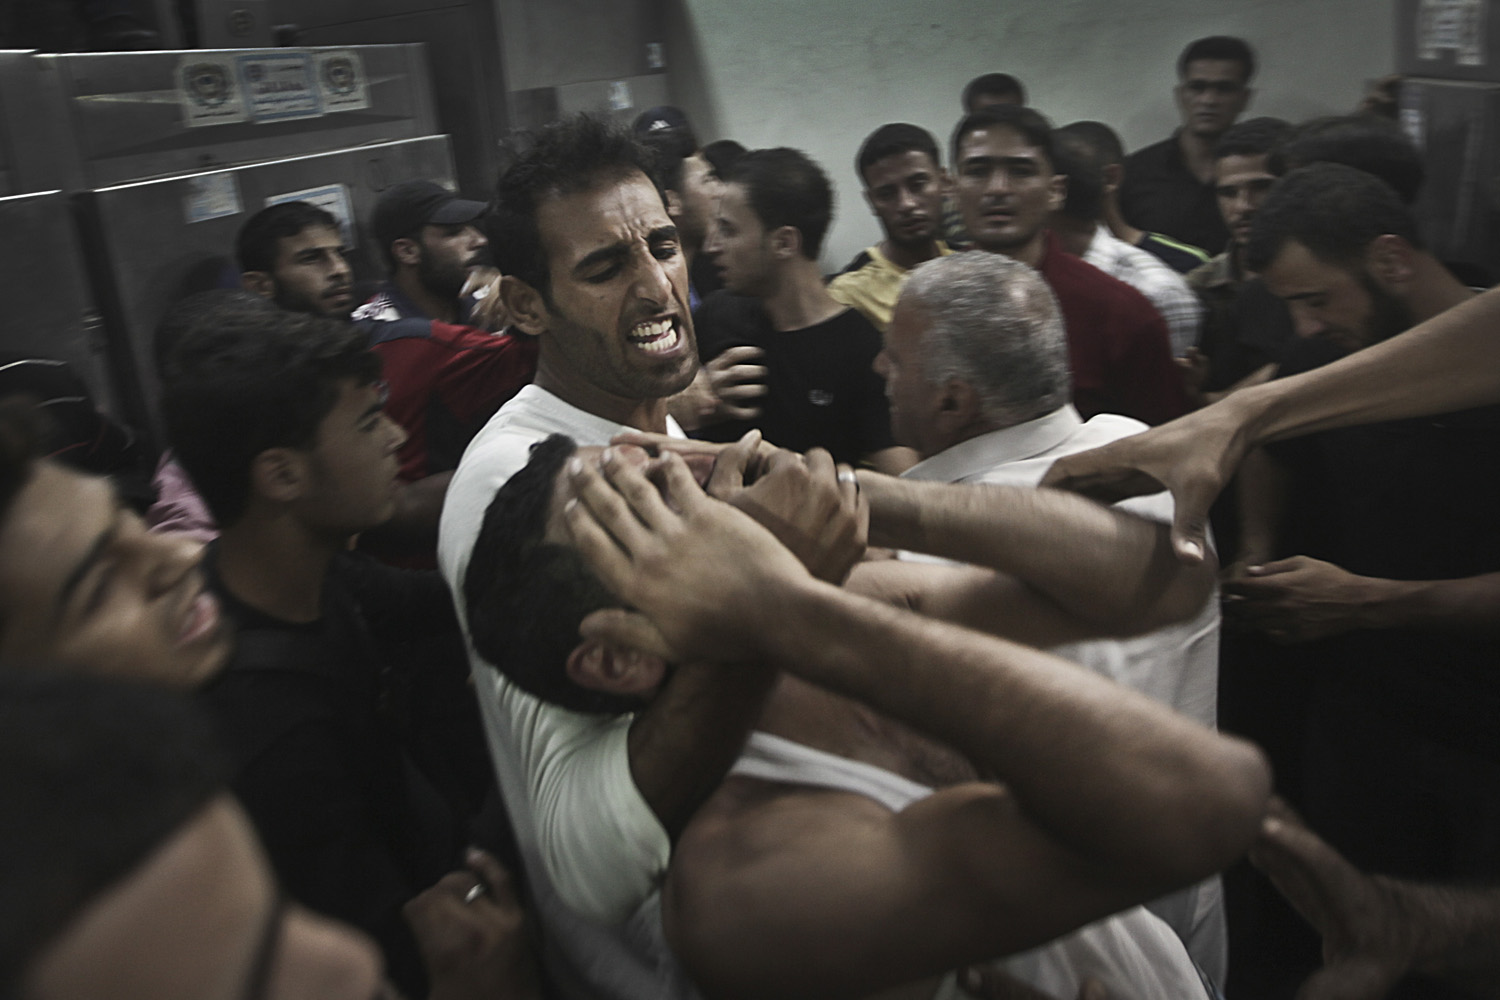 A Palestinian man reacts to the death of his relative, one of two Palestinian militants killed in an Israeli air strike in Kamal Edwan hospital morgue in Jabaliya Refugee Camp in northern Gaza Strip. Oct. 24, 2012.